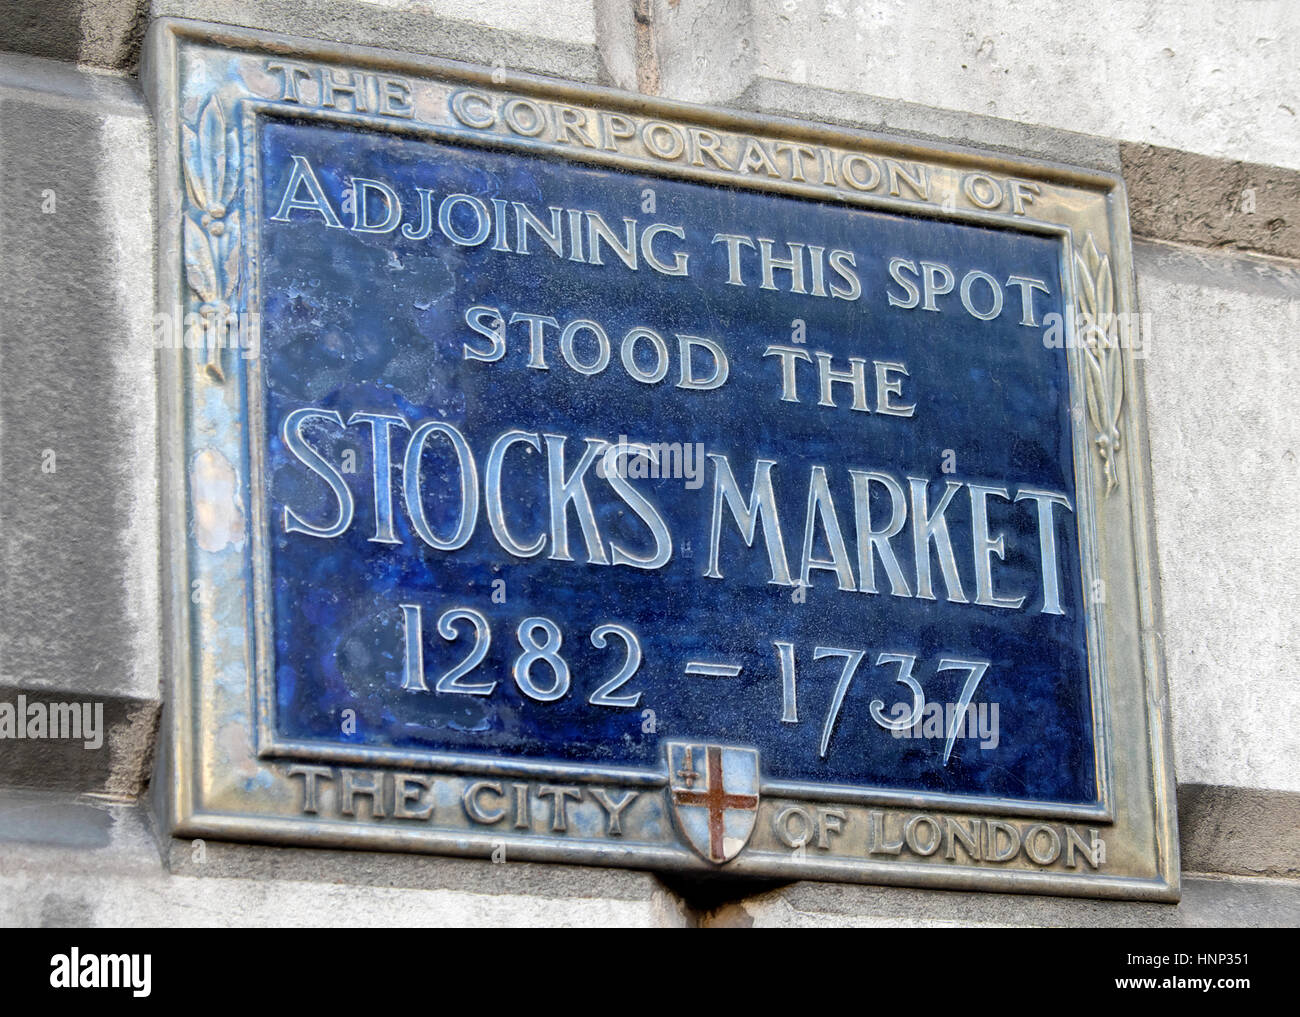 Corporation of London blue plaque for the London stock stocks market site from 1282 - 1737 on a building in the - Stock Image